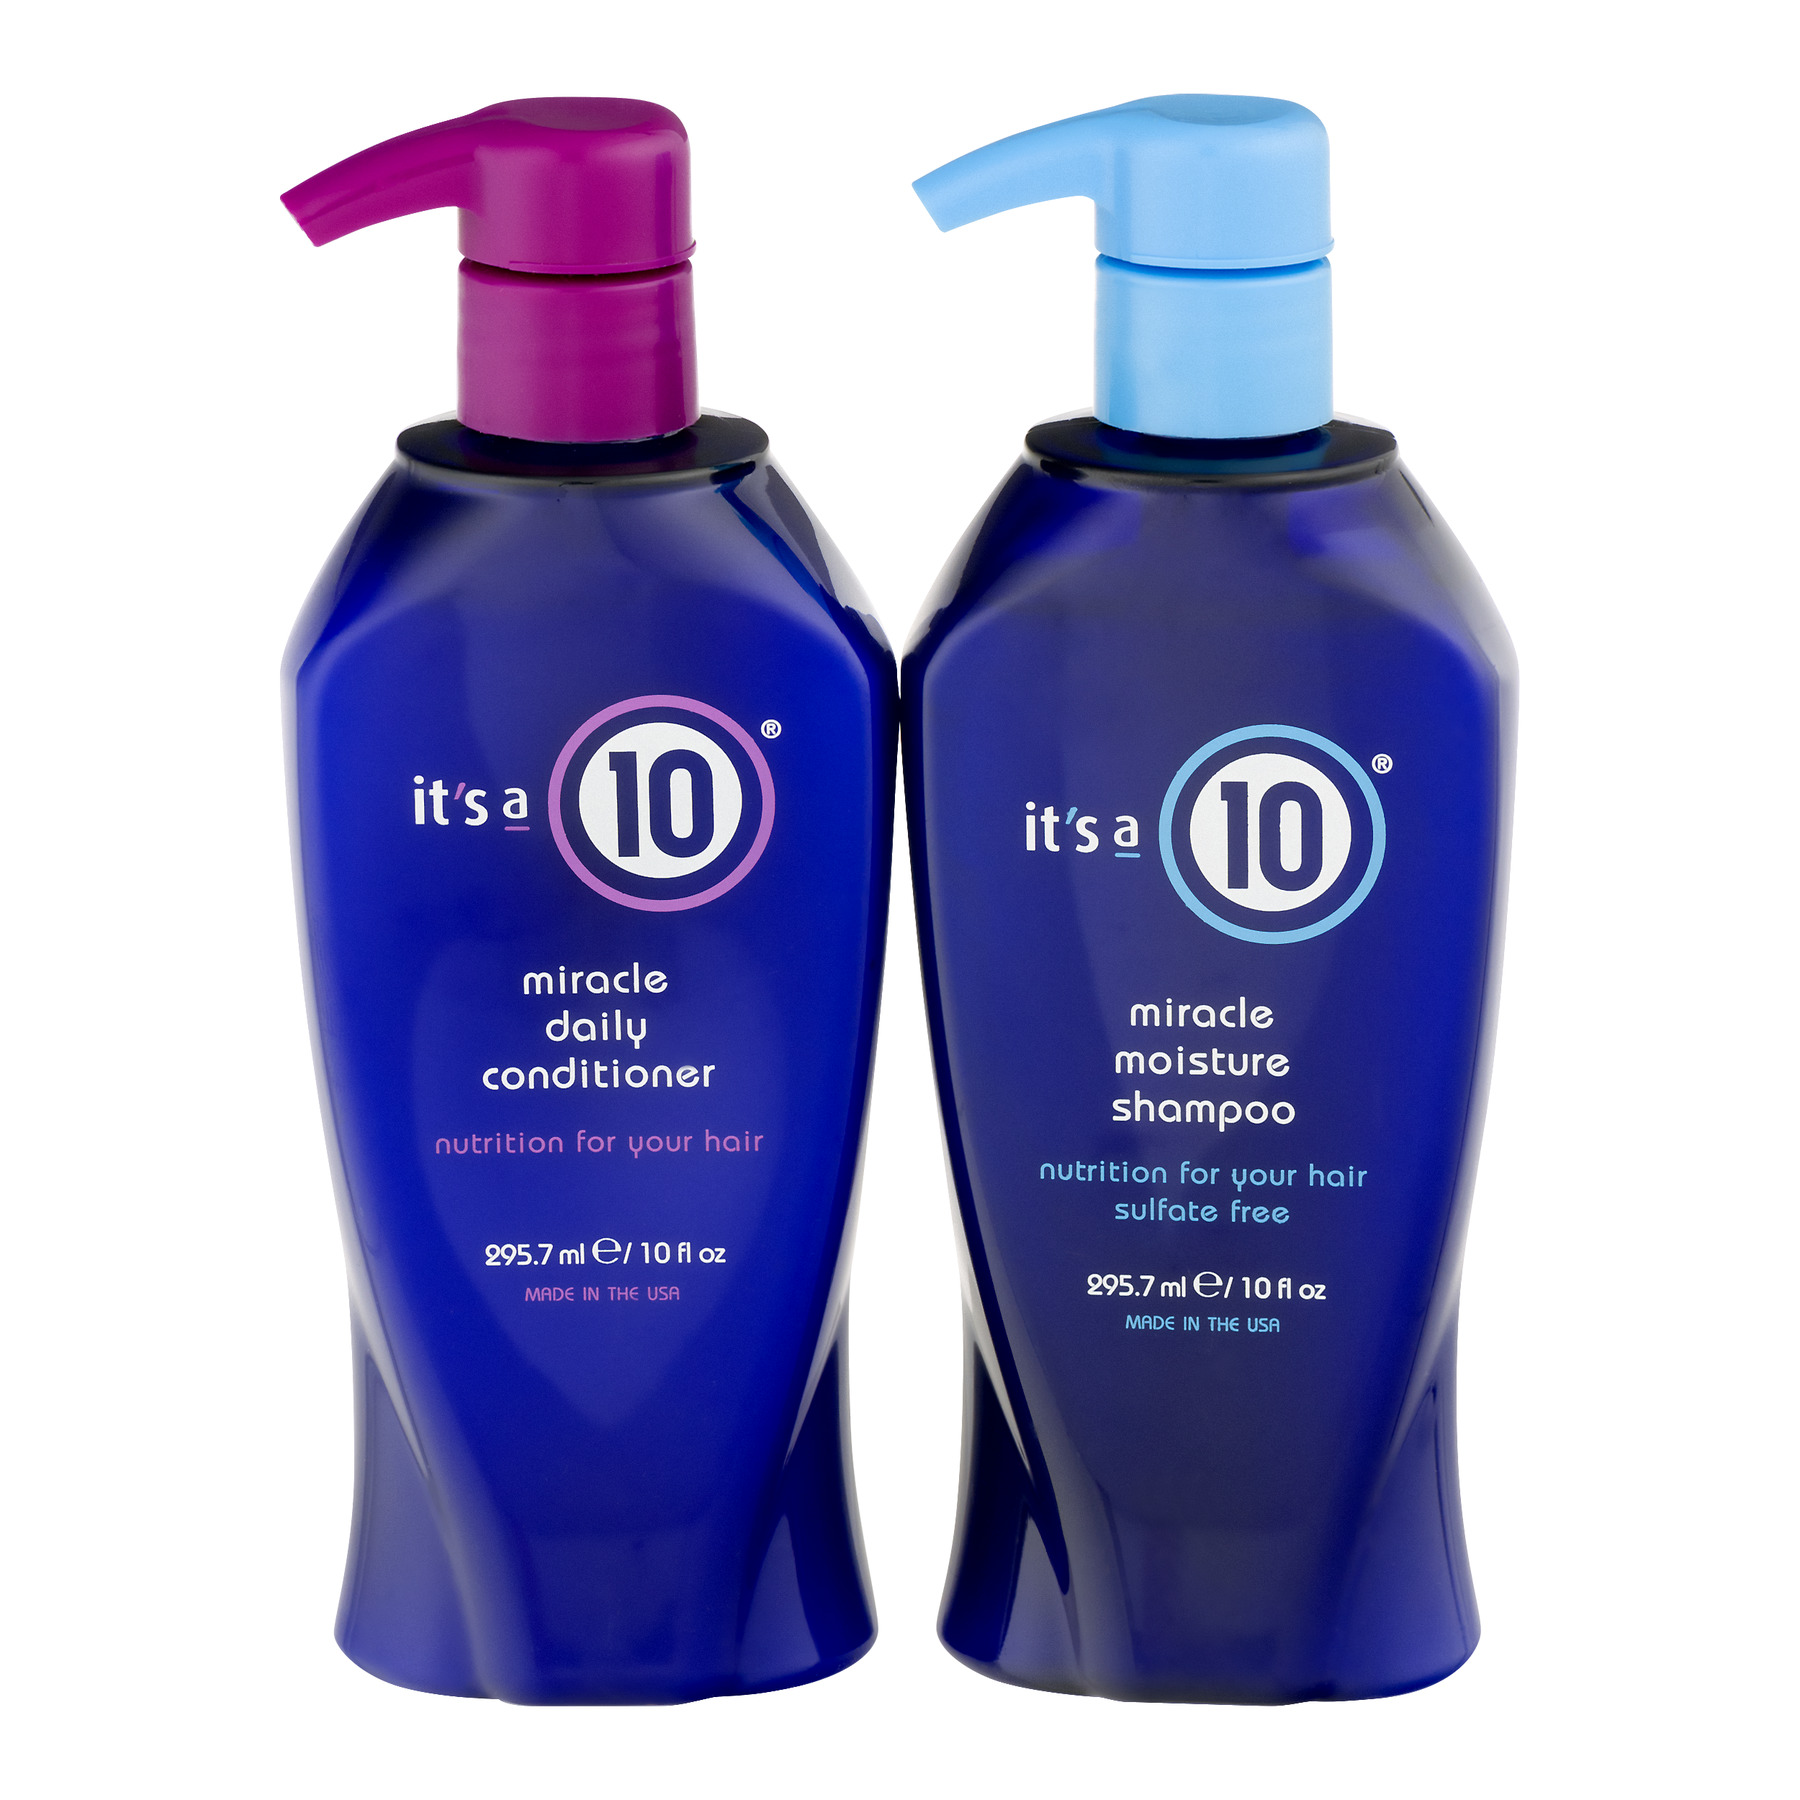 Its a 10 Miracle Moisture Shampoo & Conditioner Set, 10 Oz, 2 Ct